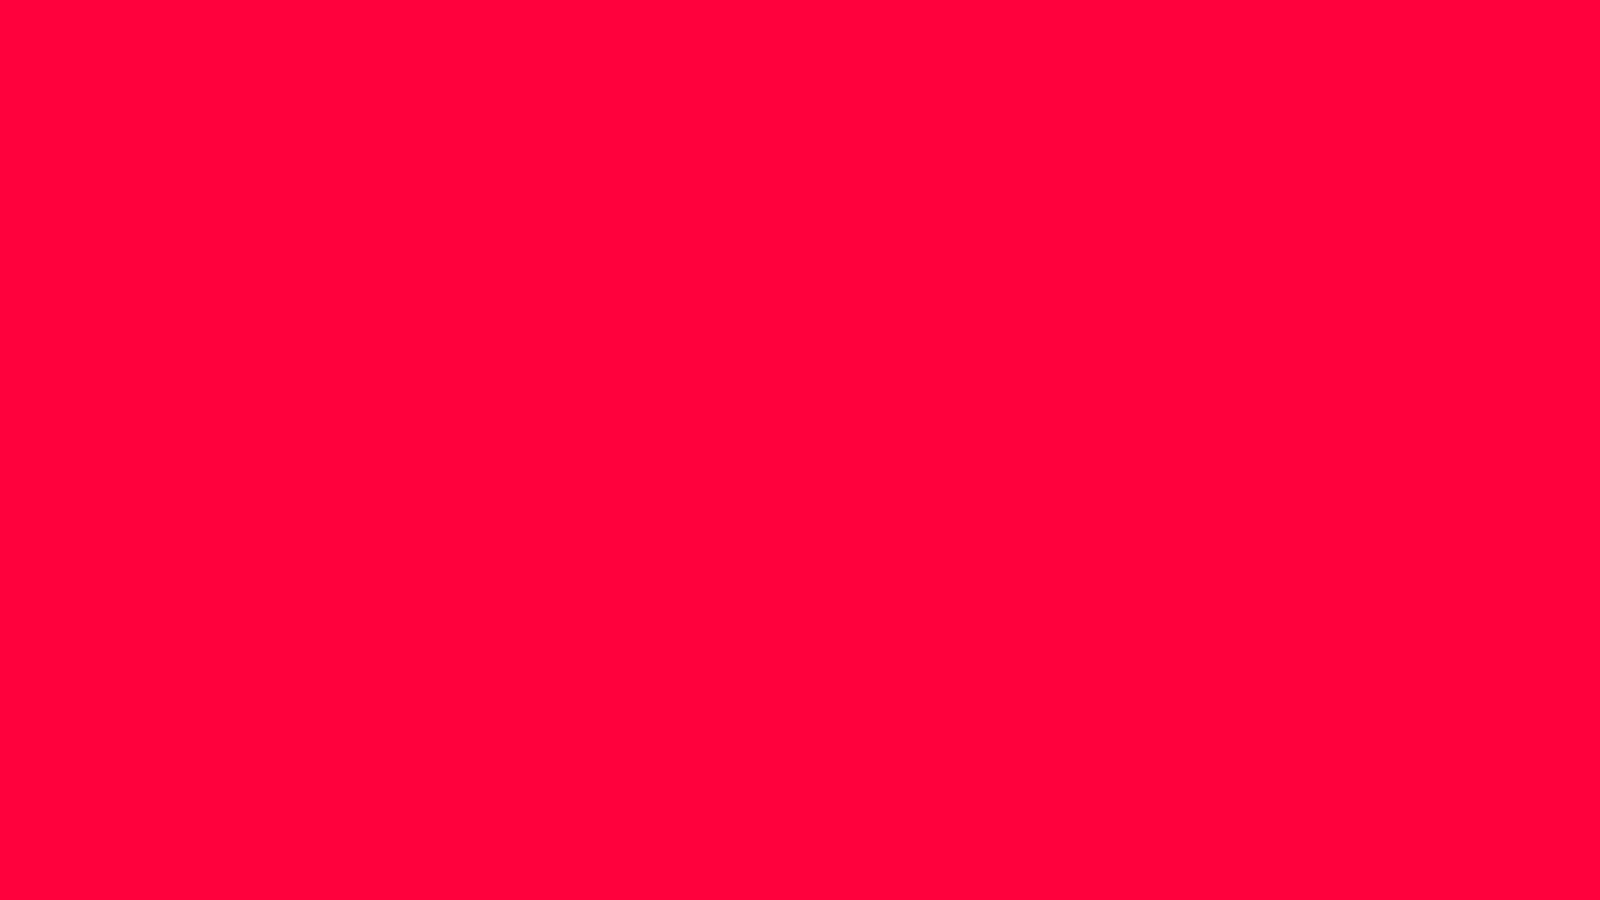 1600x900 American Rose Solid Color Background